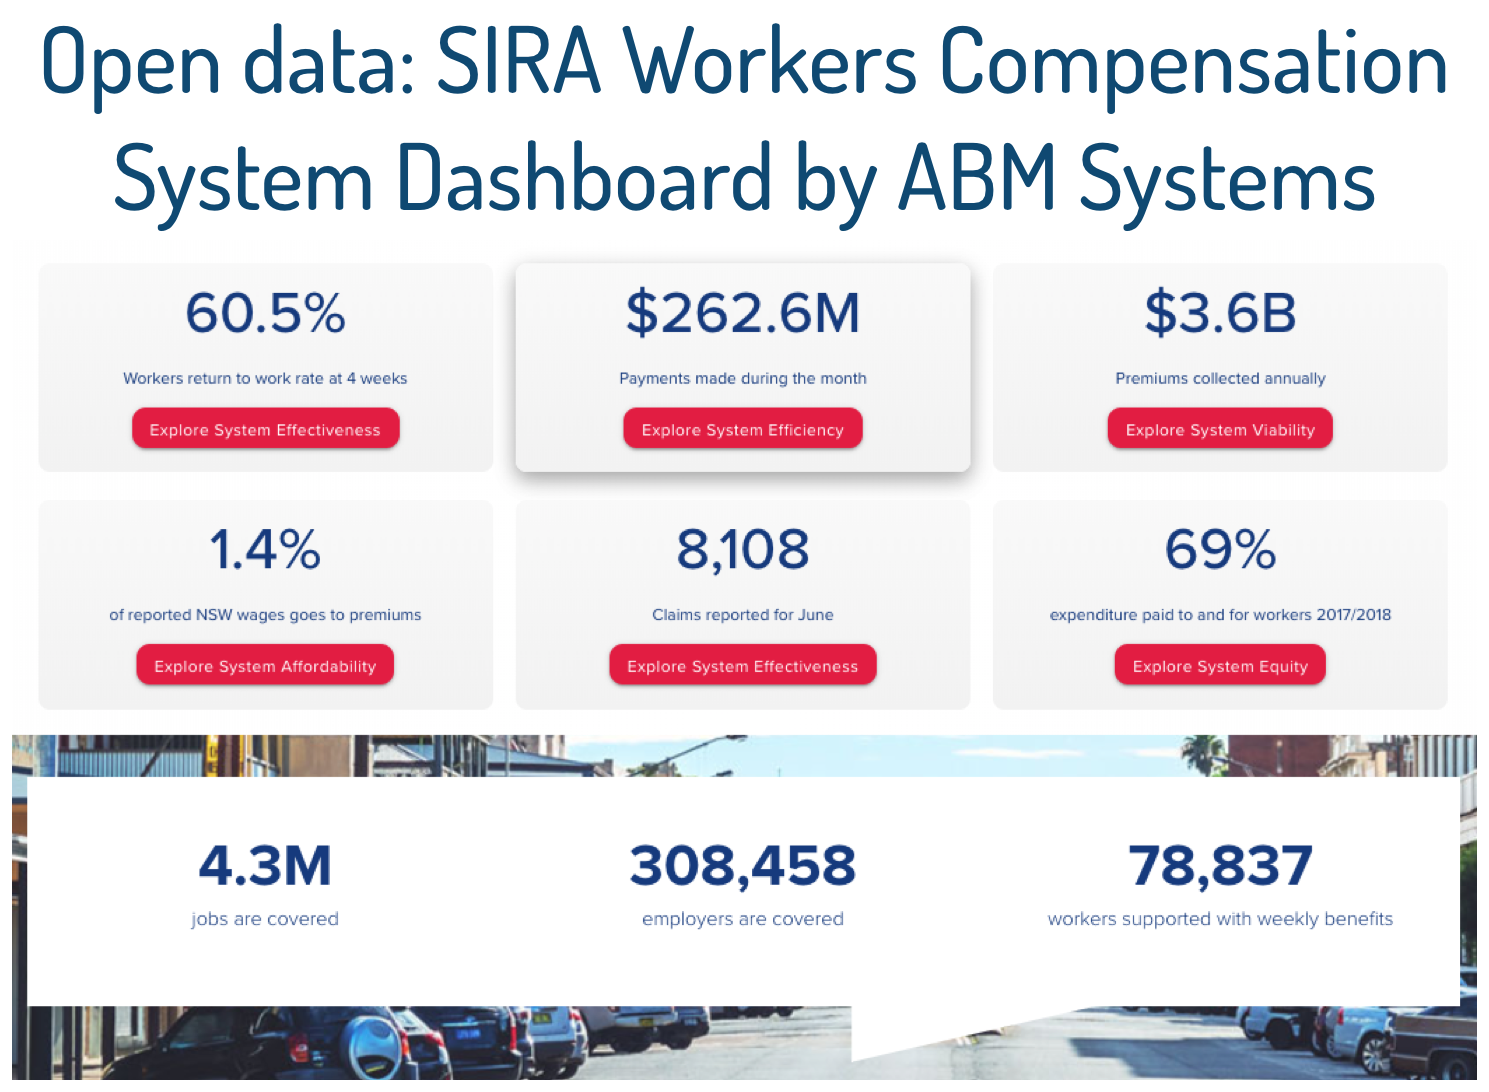 Open data: SIRA Workers Compensation System Dashboard, June 2019